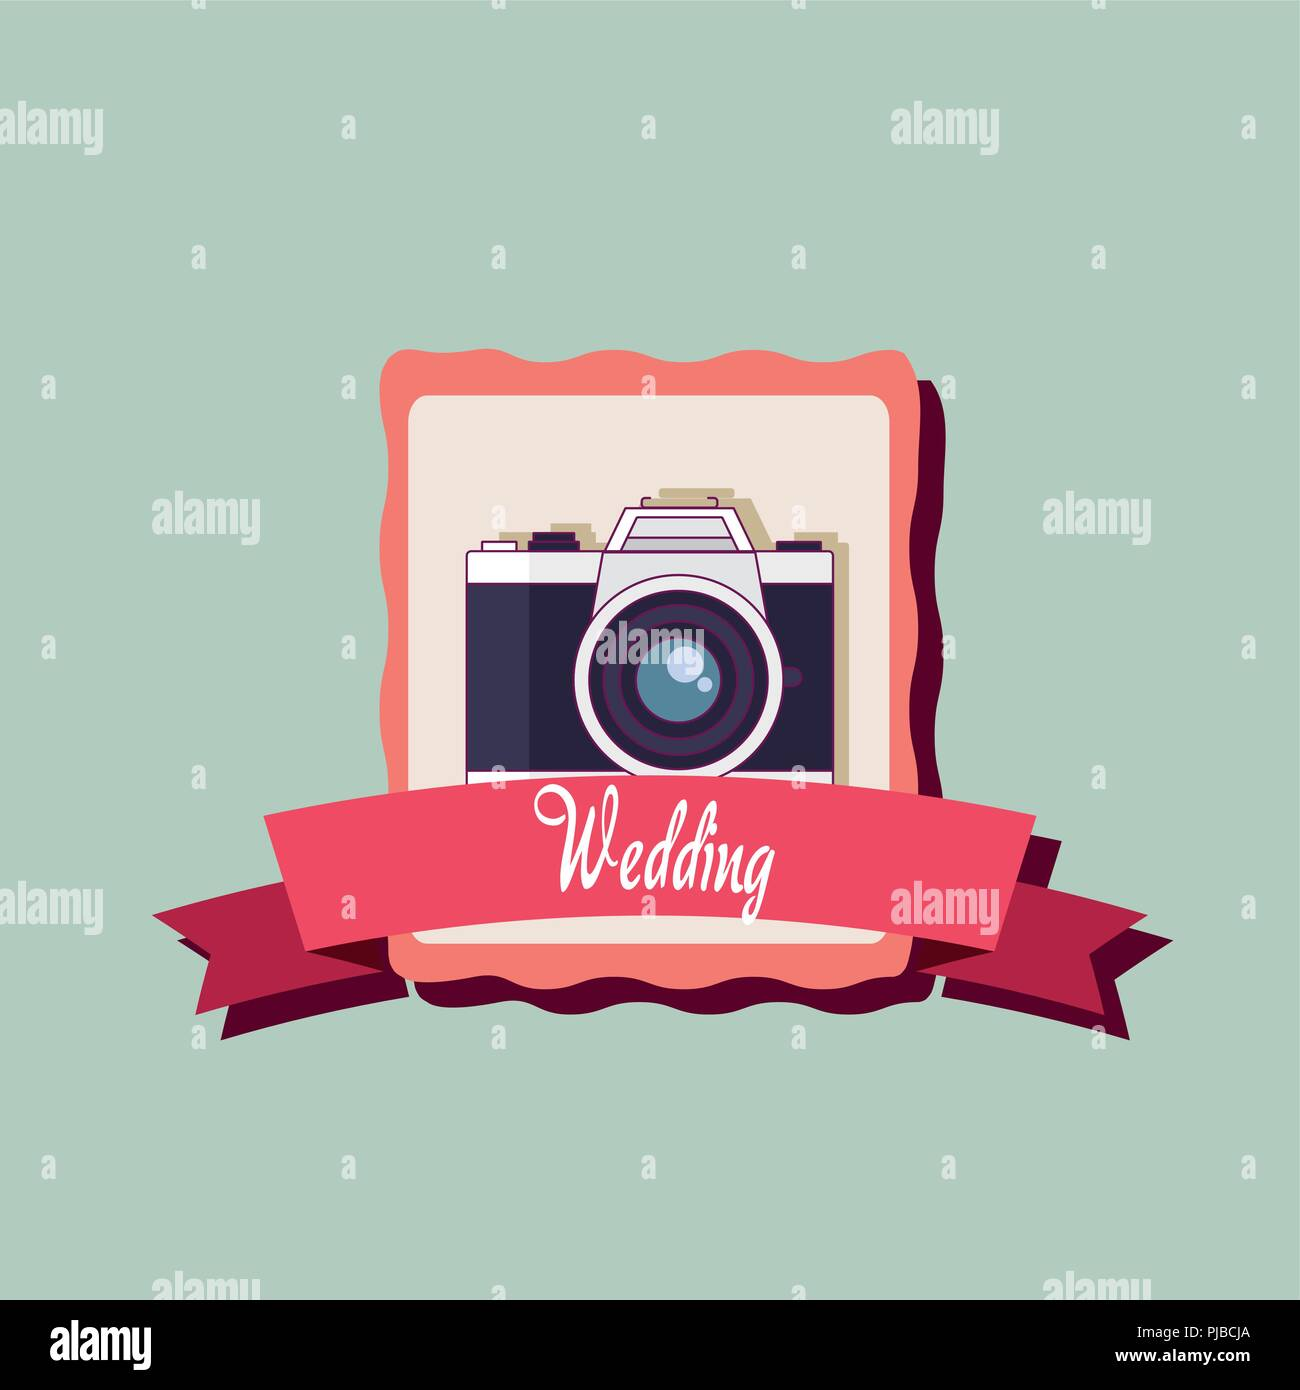 wedding card with photographic camera vector illustration design - Stock Vector